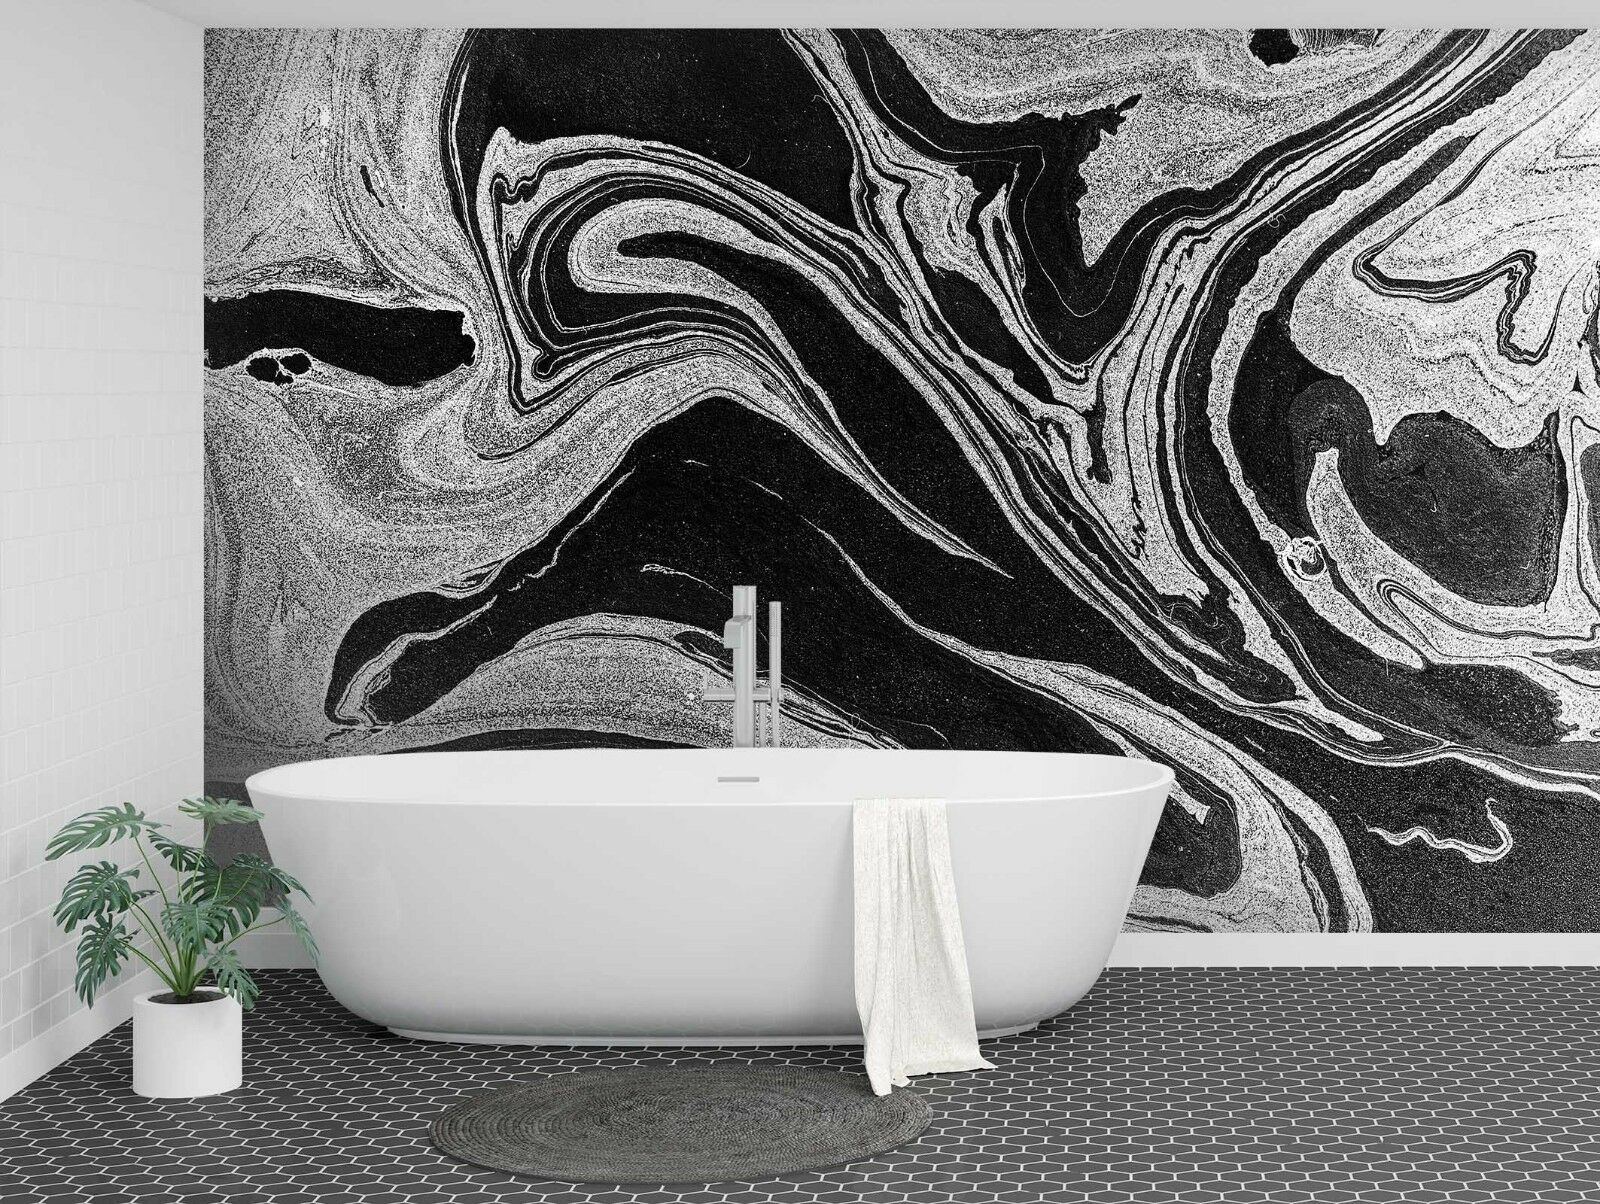 3D Abstract Turbulent 875 Texture Tiles Marble Wall Paper Decal Wallpaper Mural